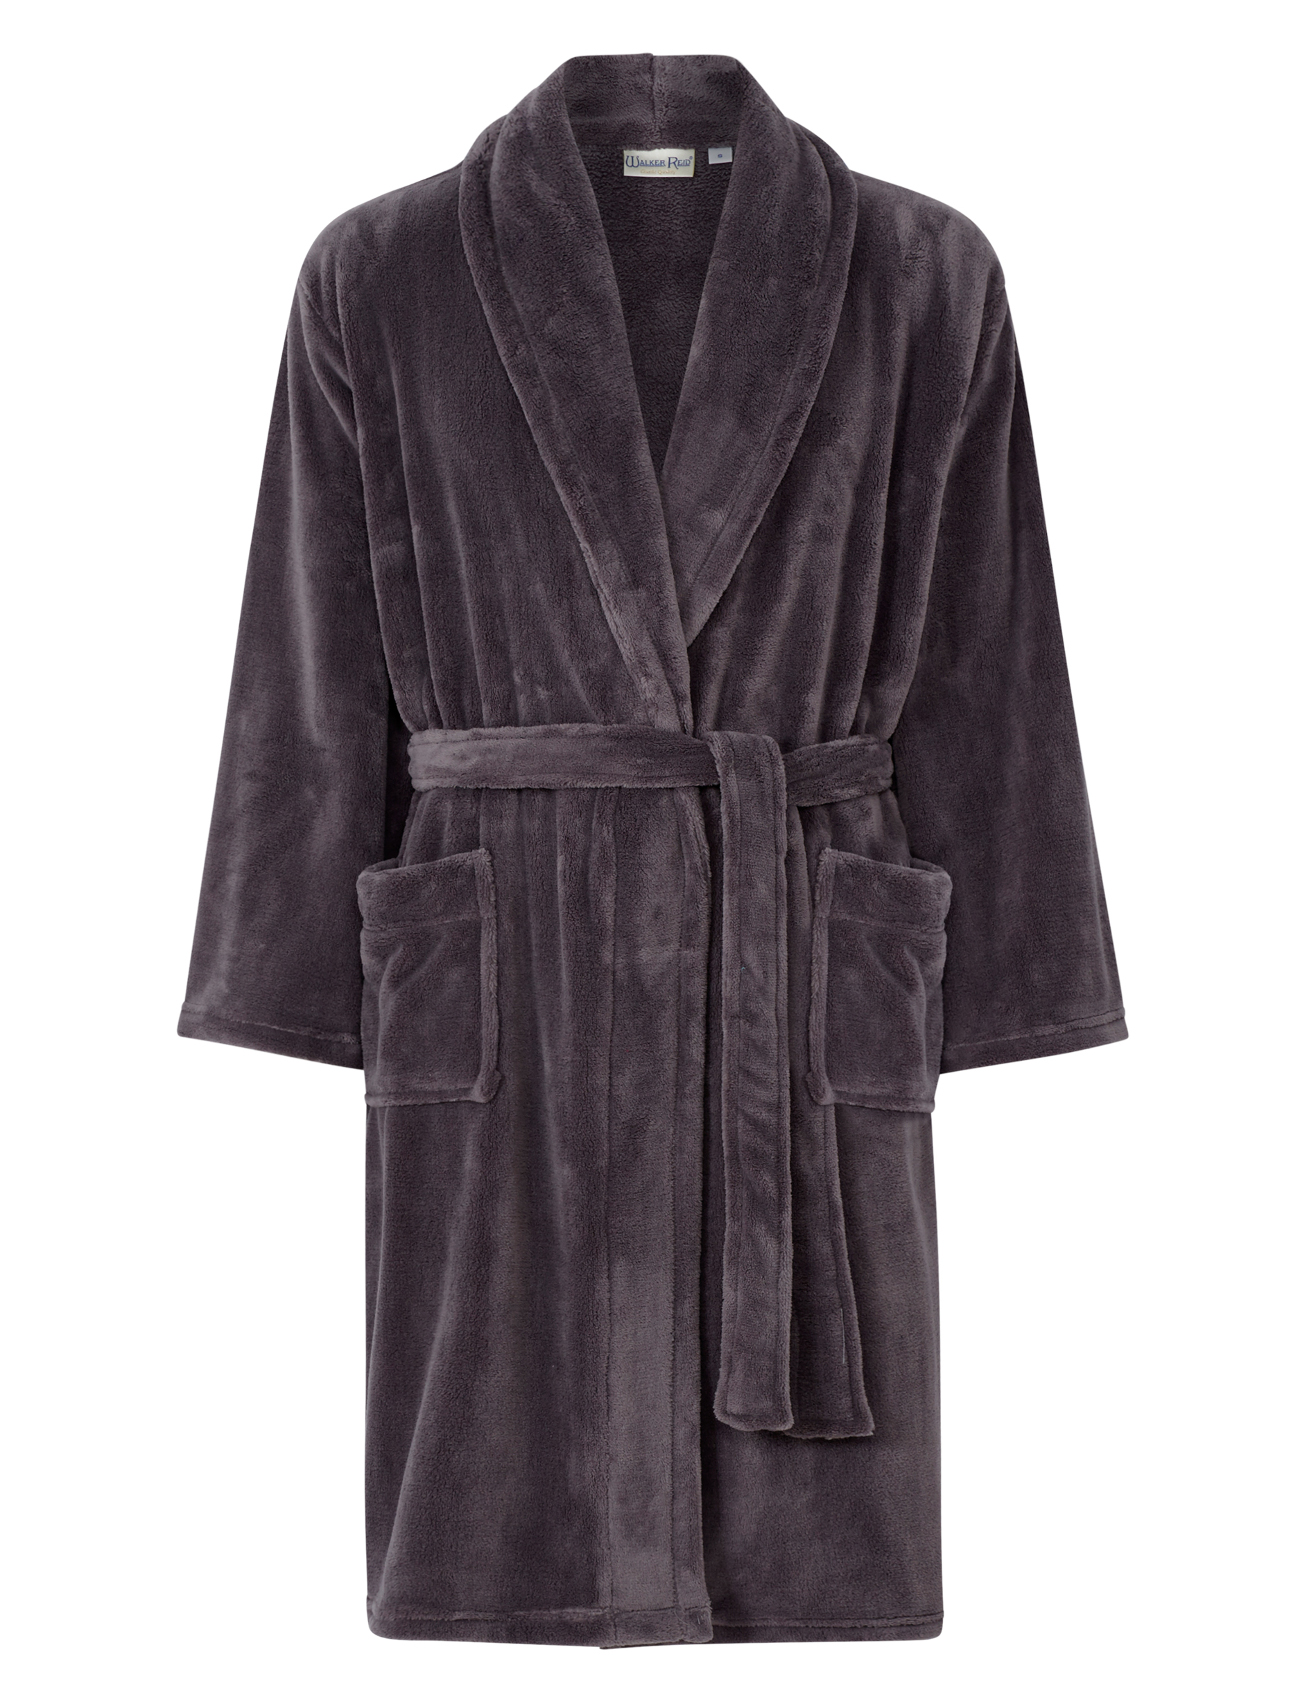 Dressing Gown Mens Soft Fleecy Plain Bathrobe Luxury Walker Reid ...